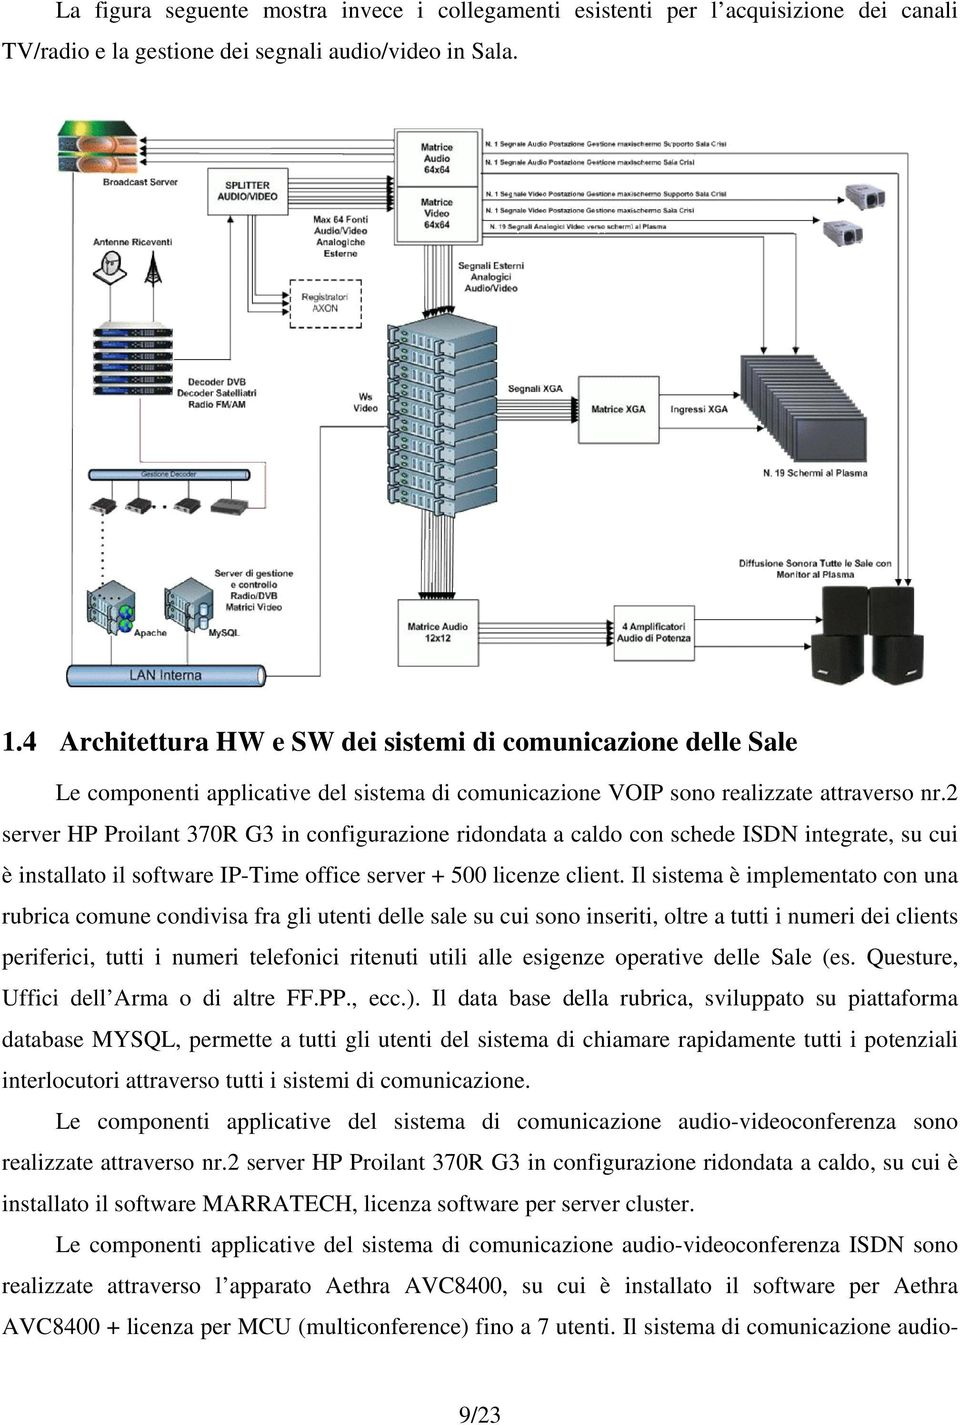 2 server HP Proilant 370R G3 in configurazione ridondata a caldo con schede ISDN integrate, su cui è installato il software IP-Time office server + 500 licenze client.